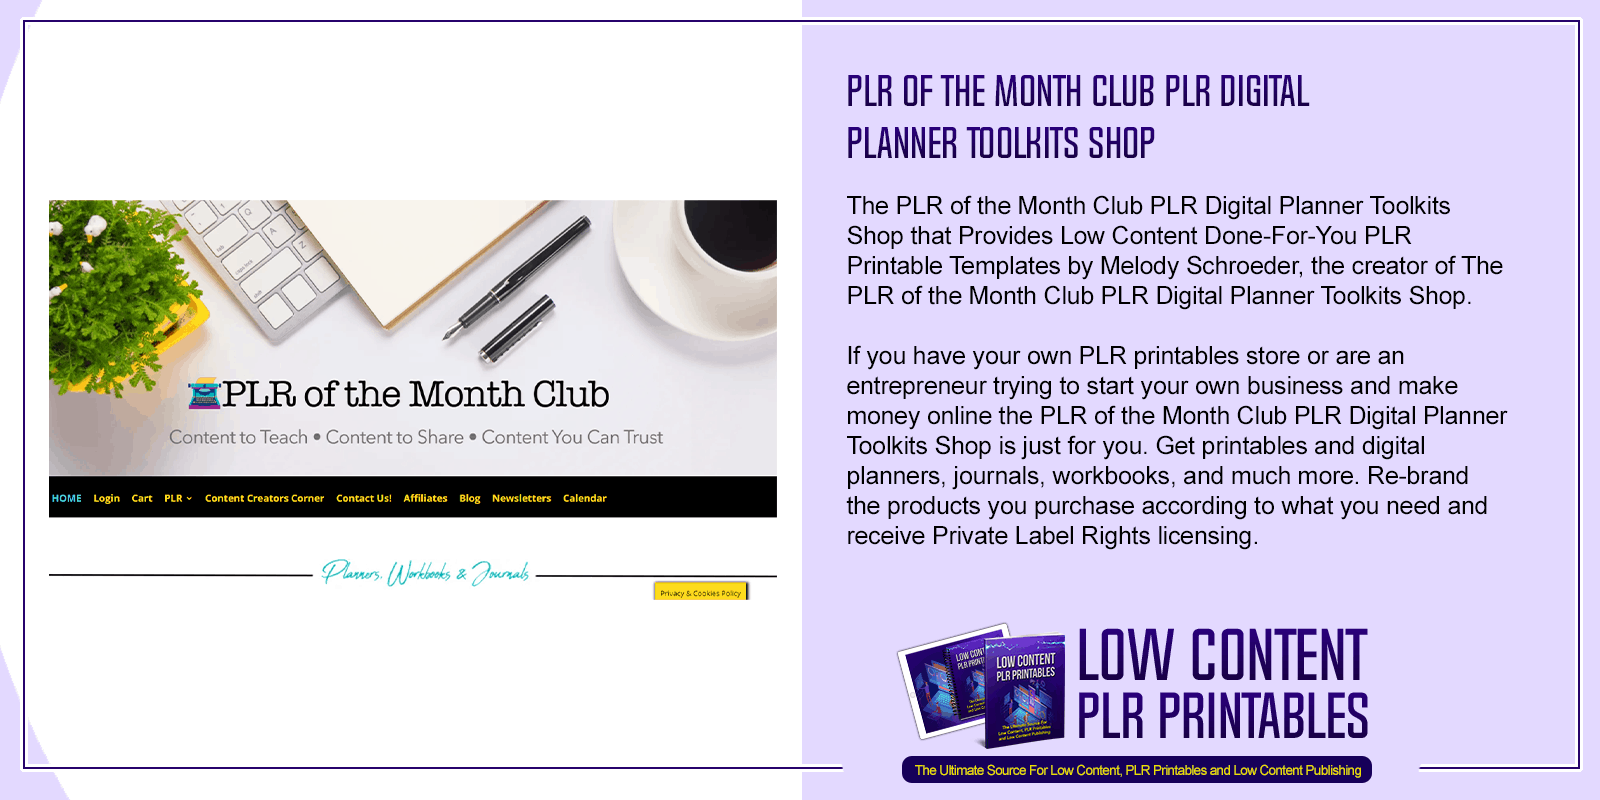 PLR of the Month Club PLR Digital Planner Toolkits Shop 1